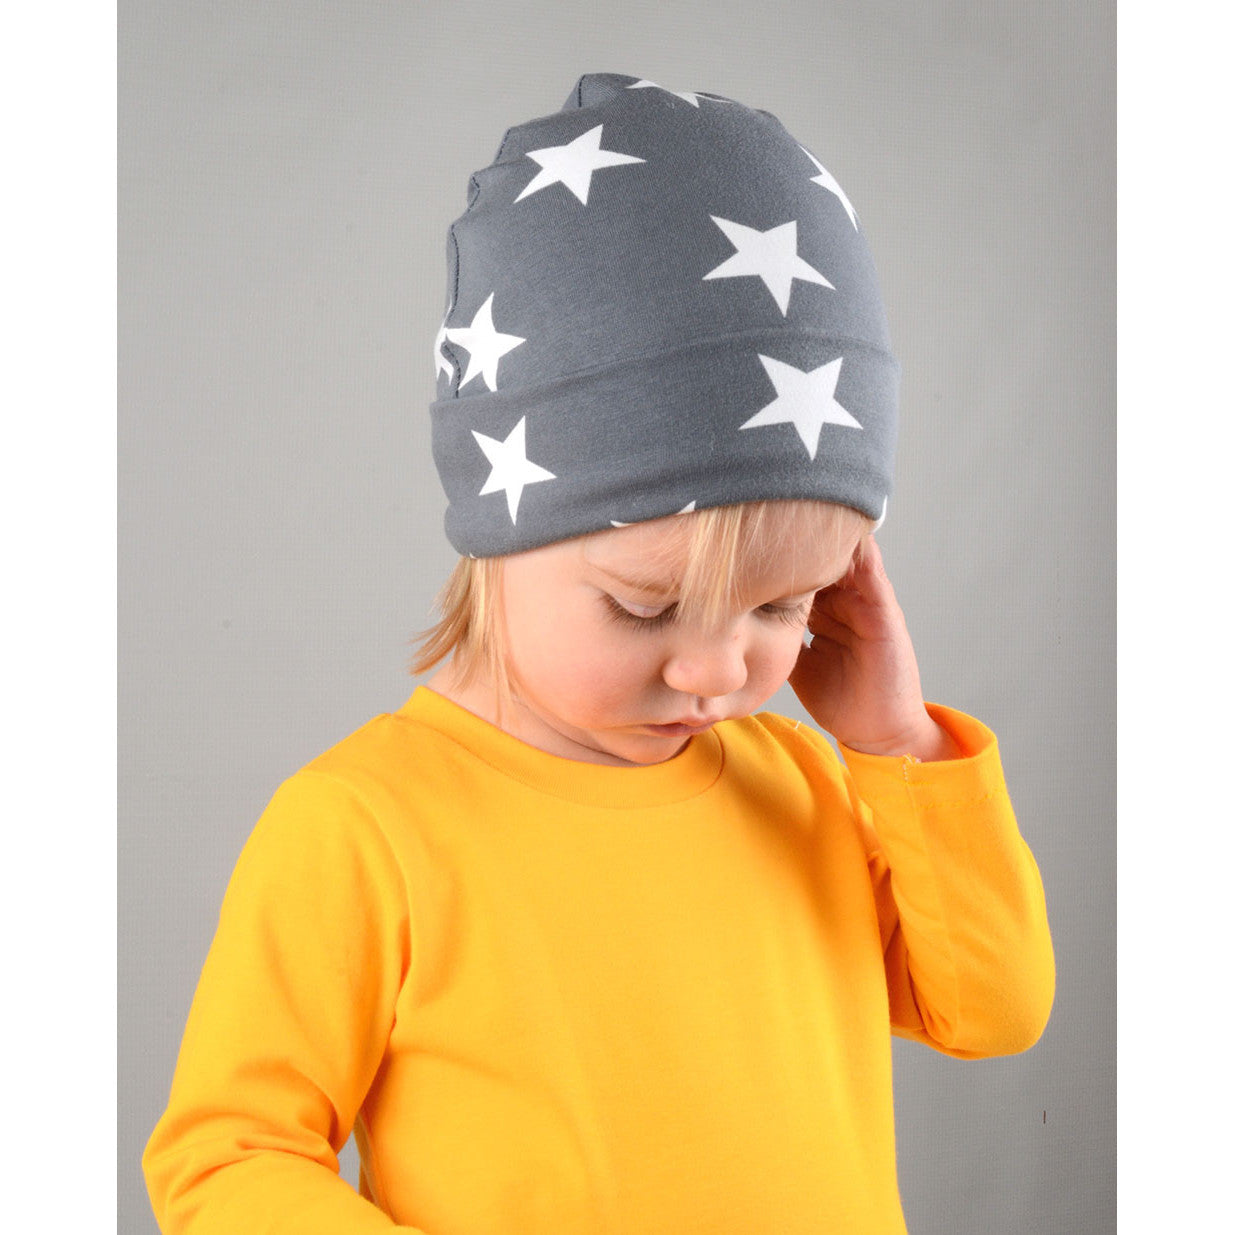 Beanie Sewing Pattern Magnificent Inspiration Design